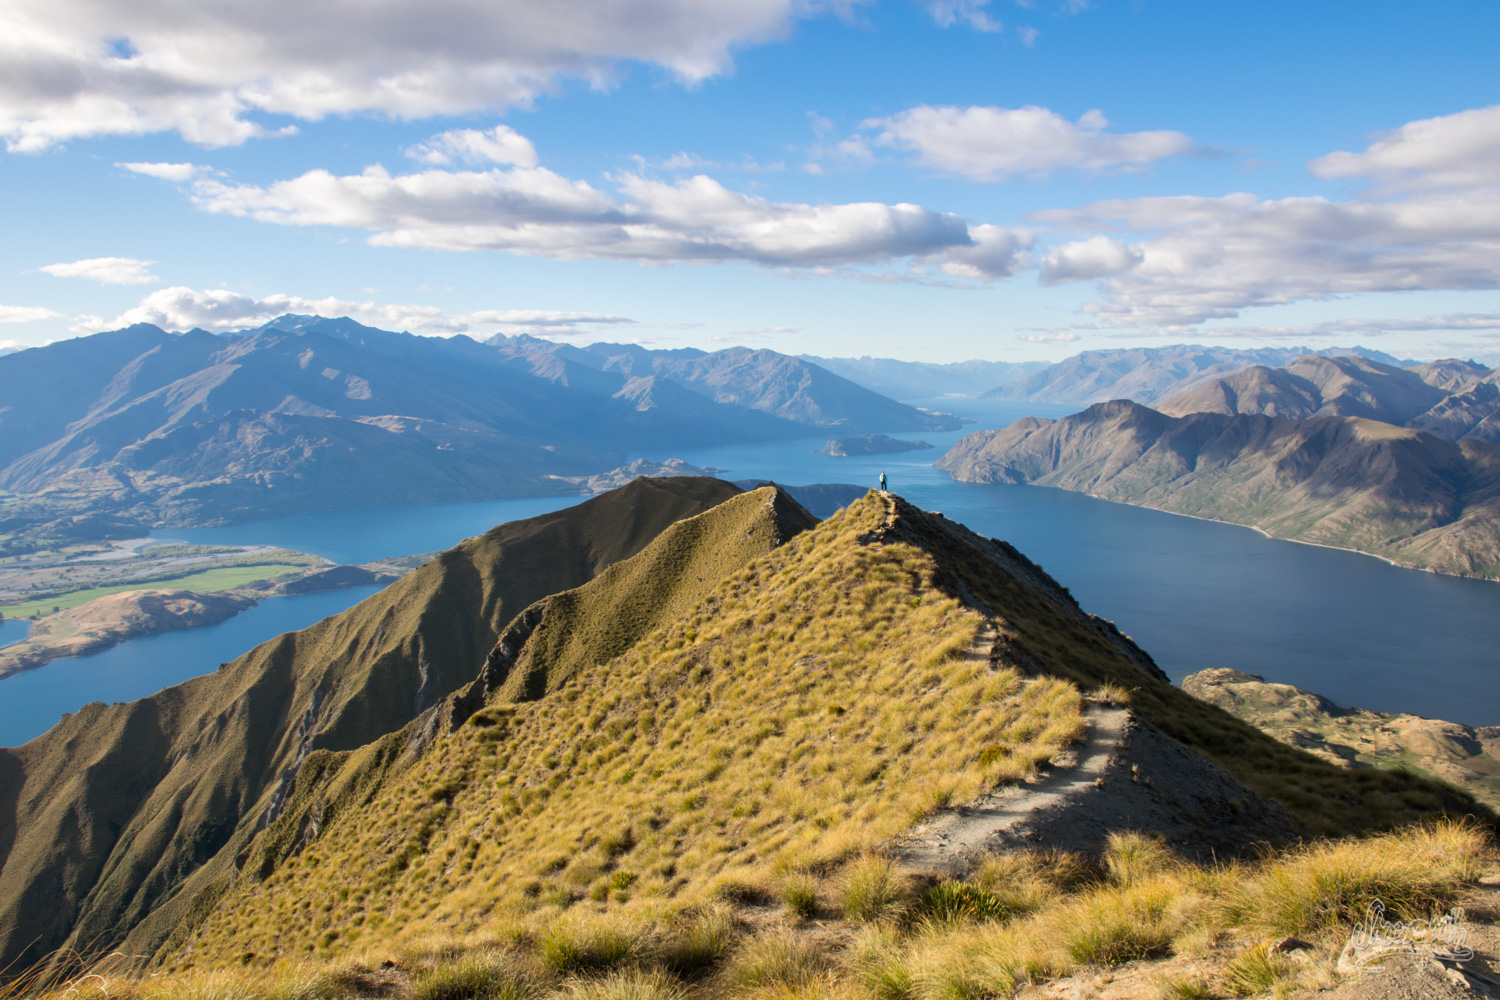 On the way up to Roys Peak summit : a nice view on Lake Wanaka